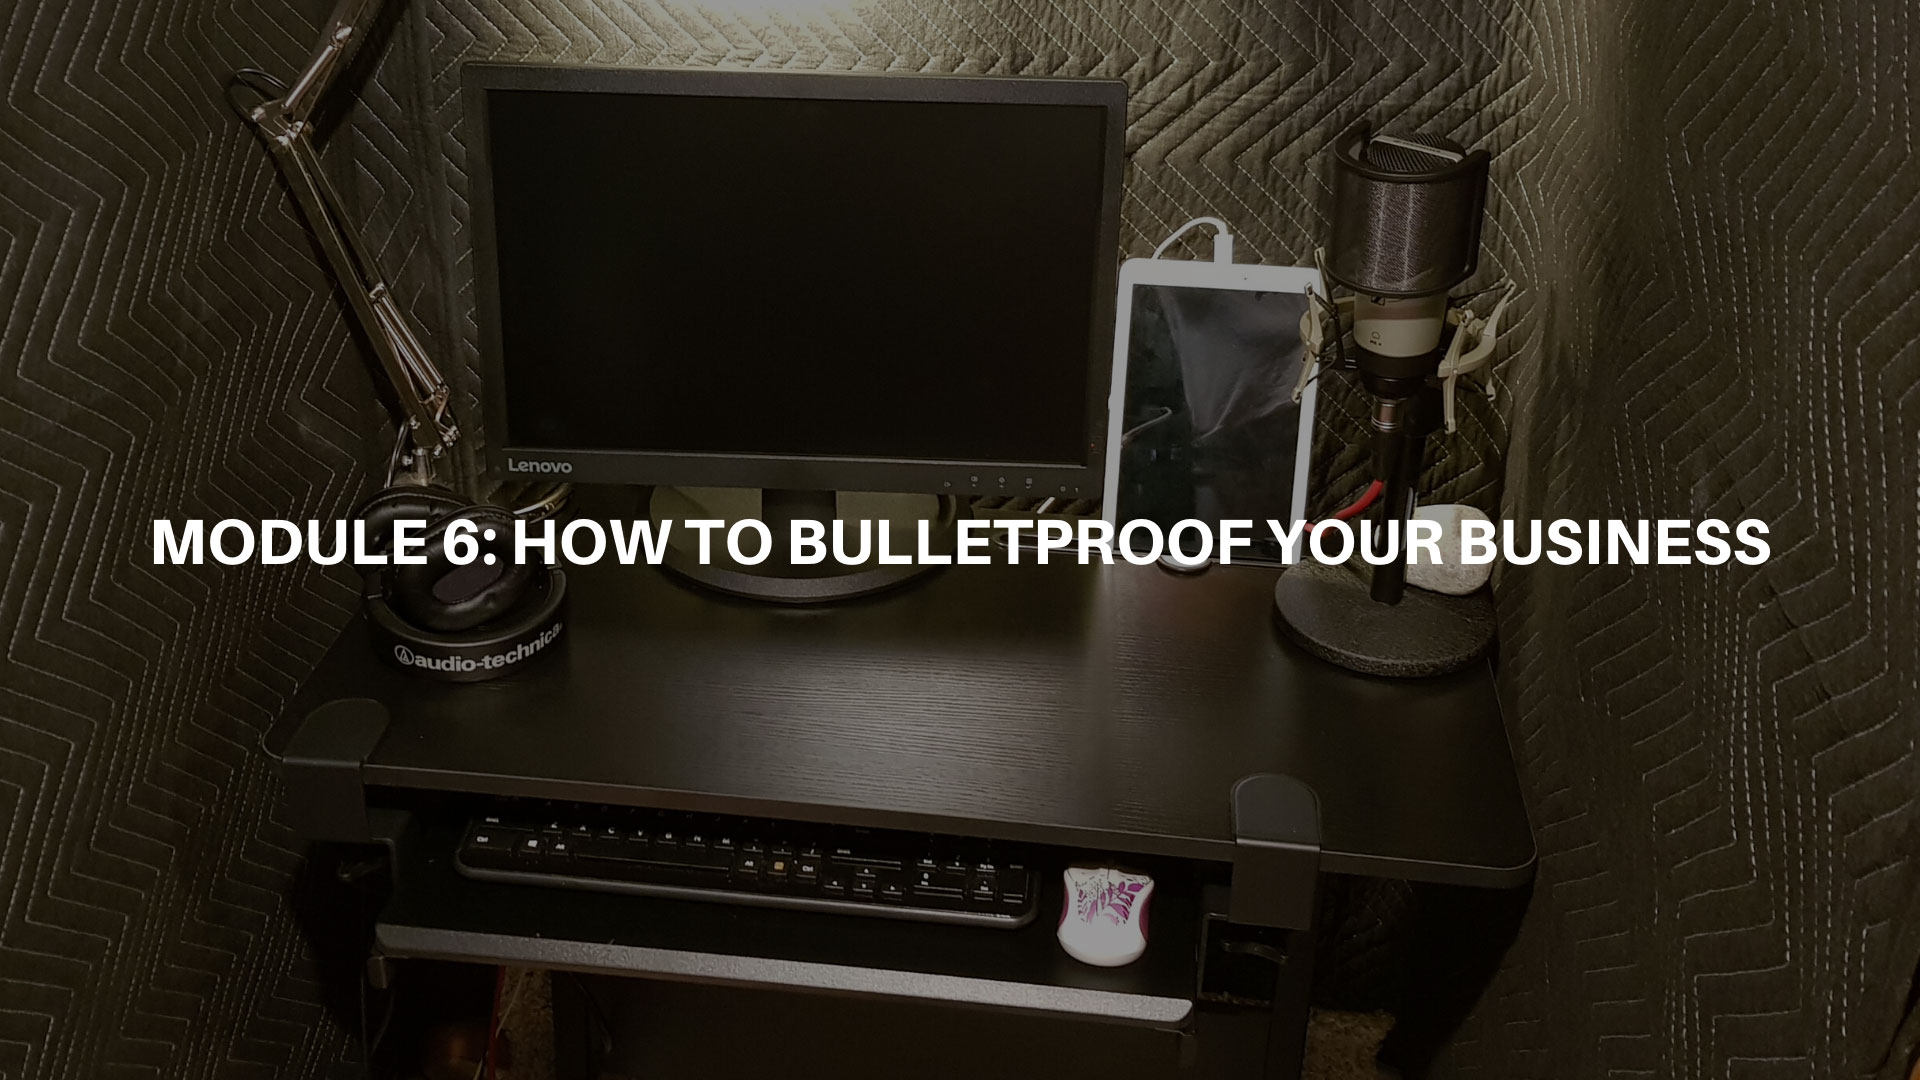 Module 6 - How to Bulletproof Your Business